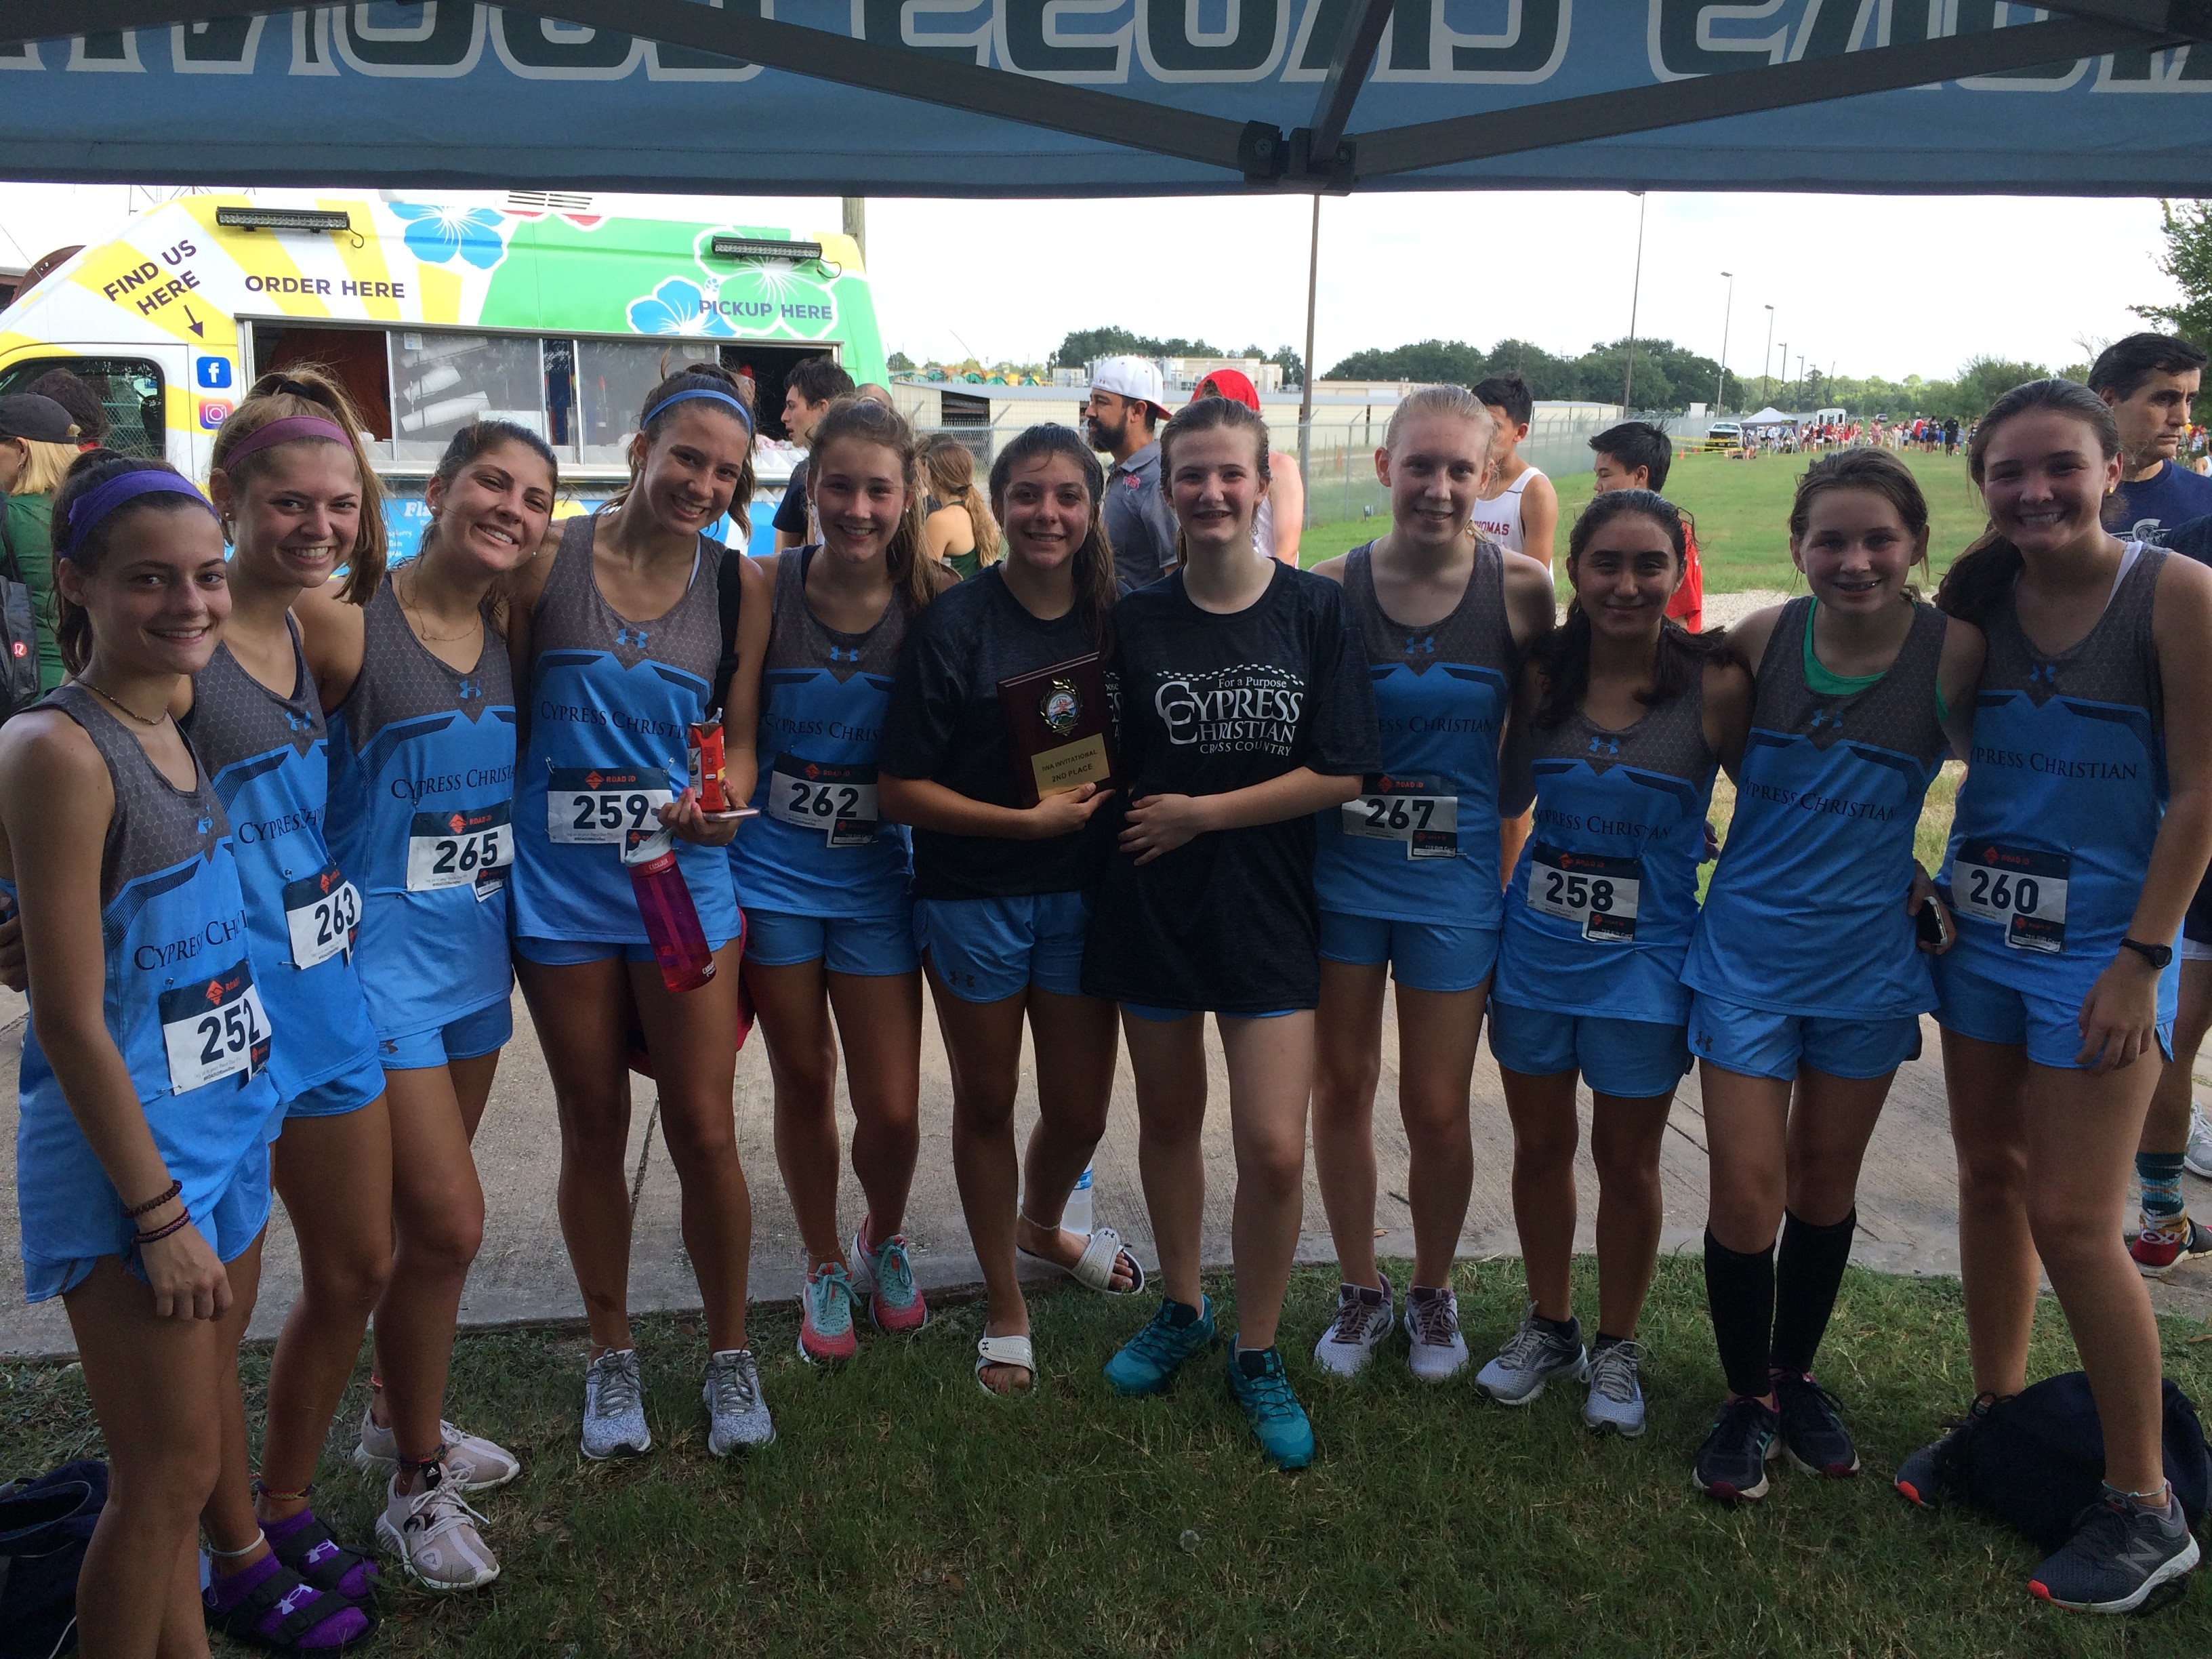 Cross Country JV Girls Finish Second in First Race of the Season